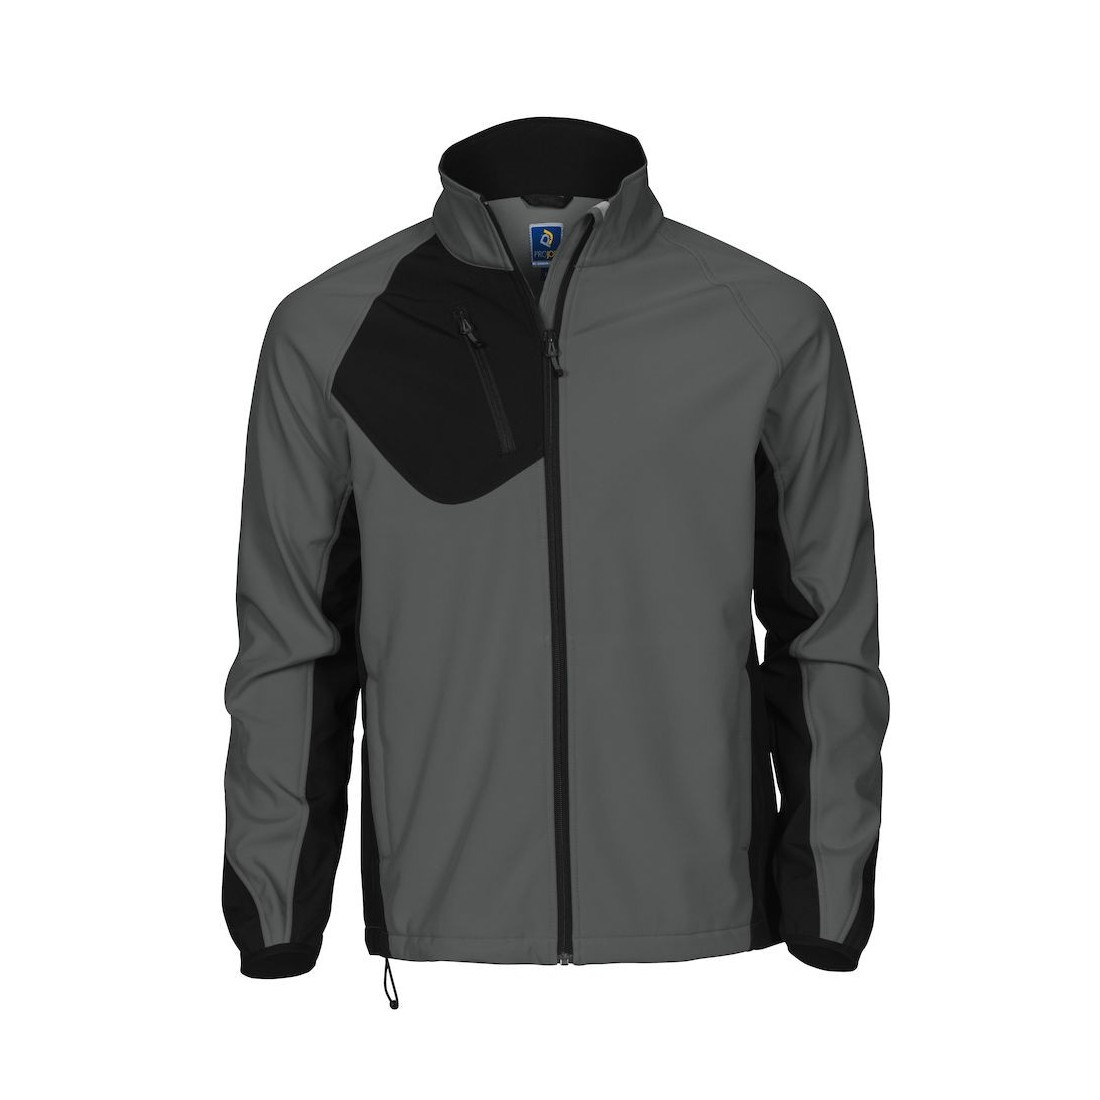 Chaqueta softshell distintos colores